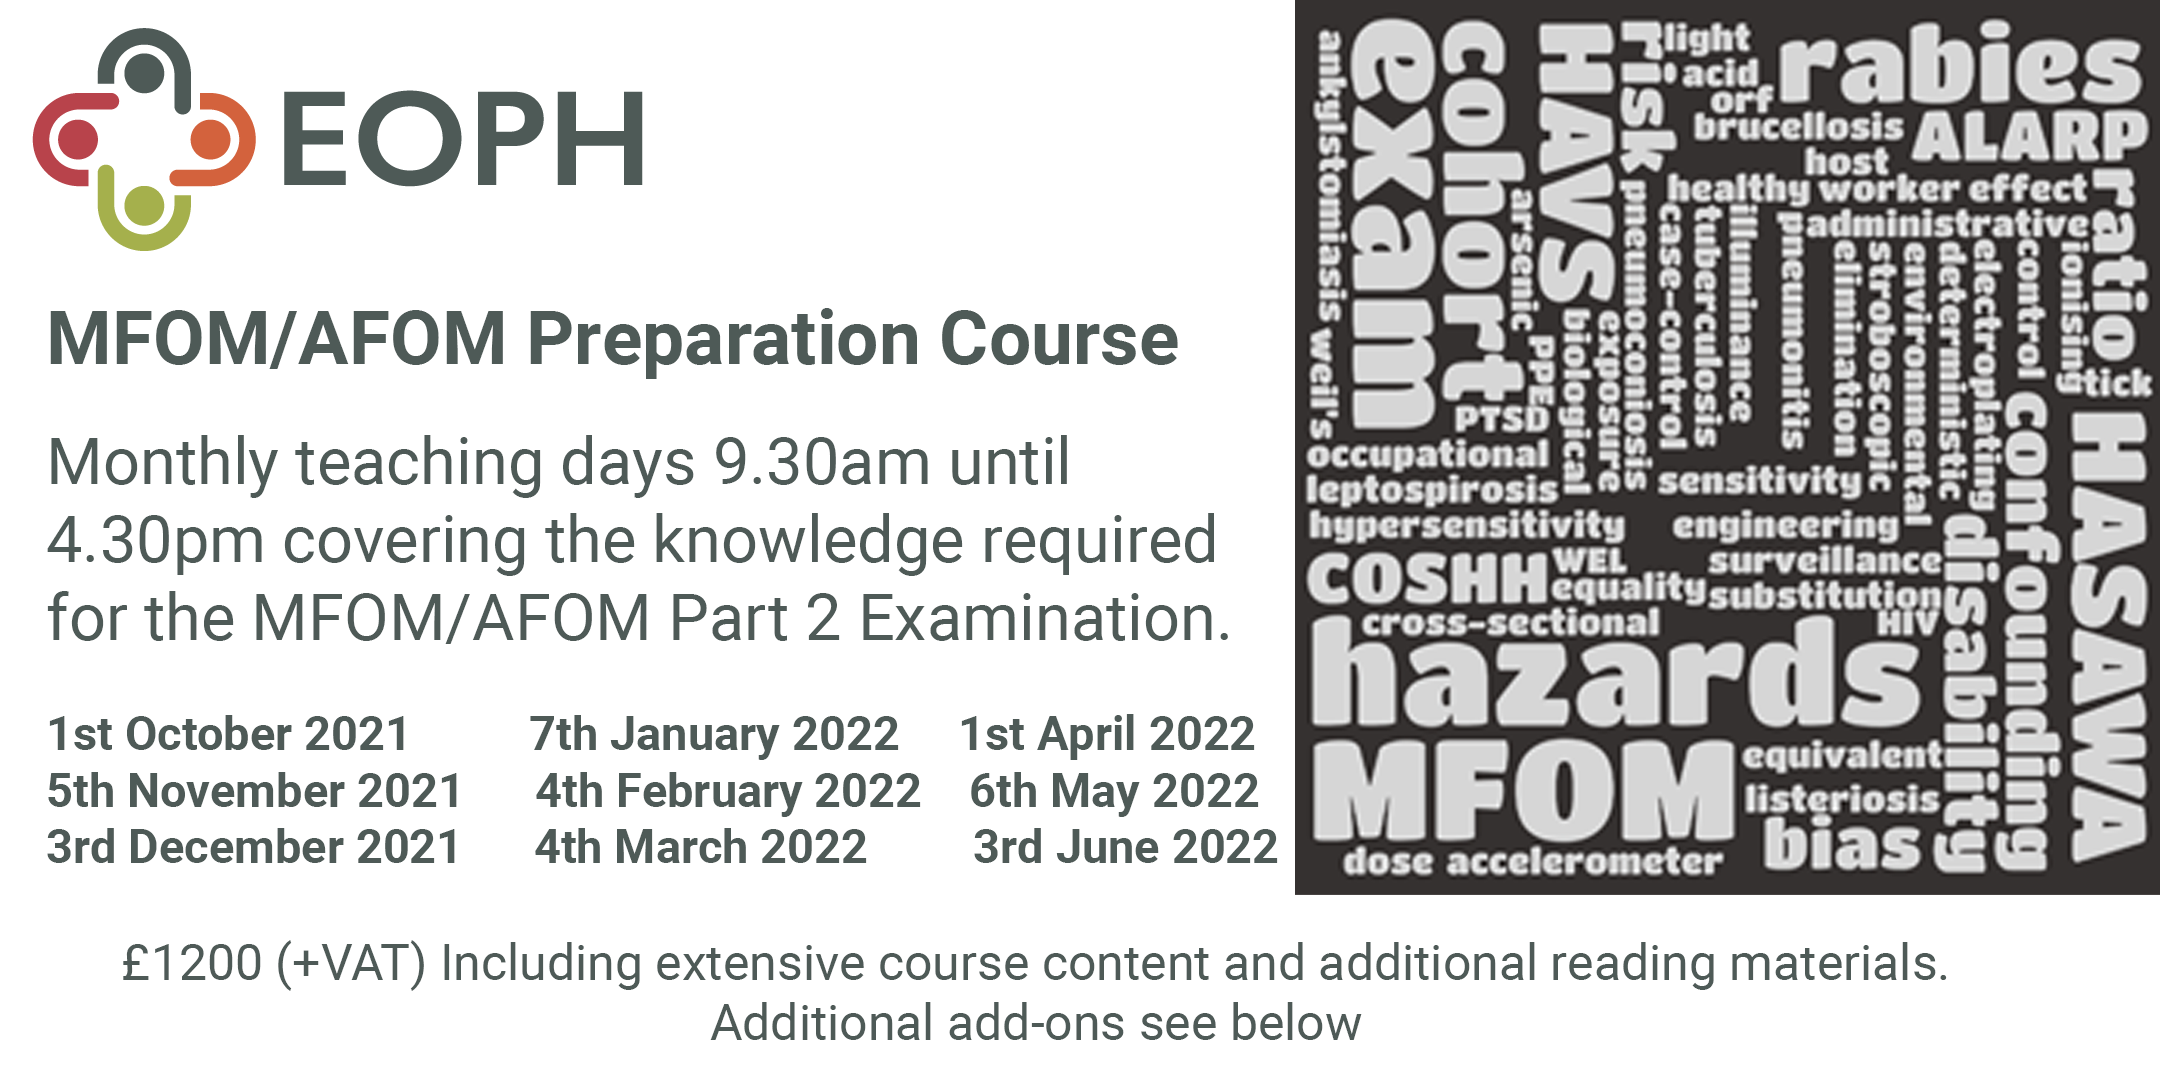 MFOM/AFOM Preparation Course   9 session monthly course   Starting 1st October 2021 9.30am - 4.30pm   via Zoom